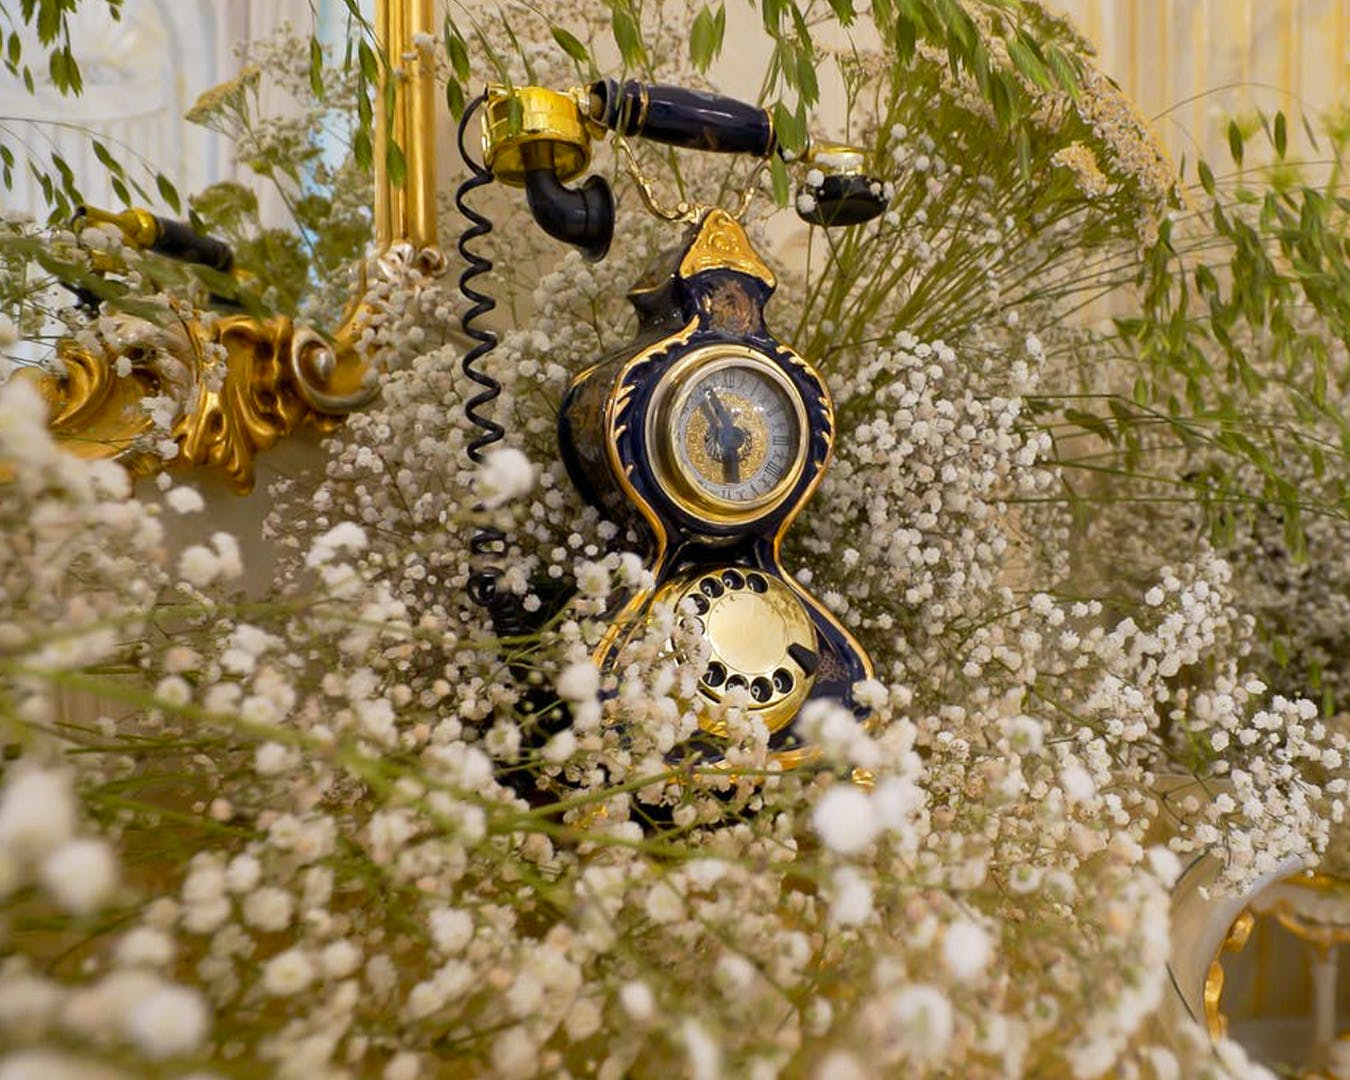 Vintage telephone covered in baby's breath for London-themed engagement party idea | PartySlate